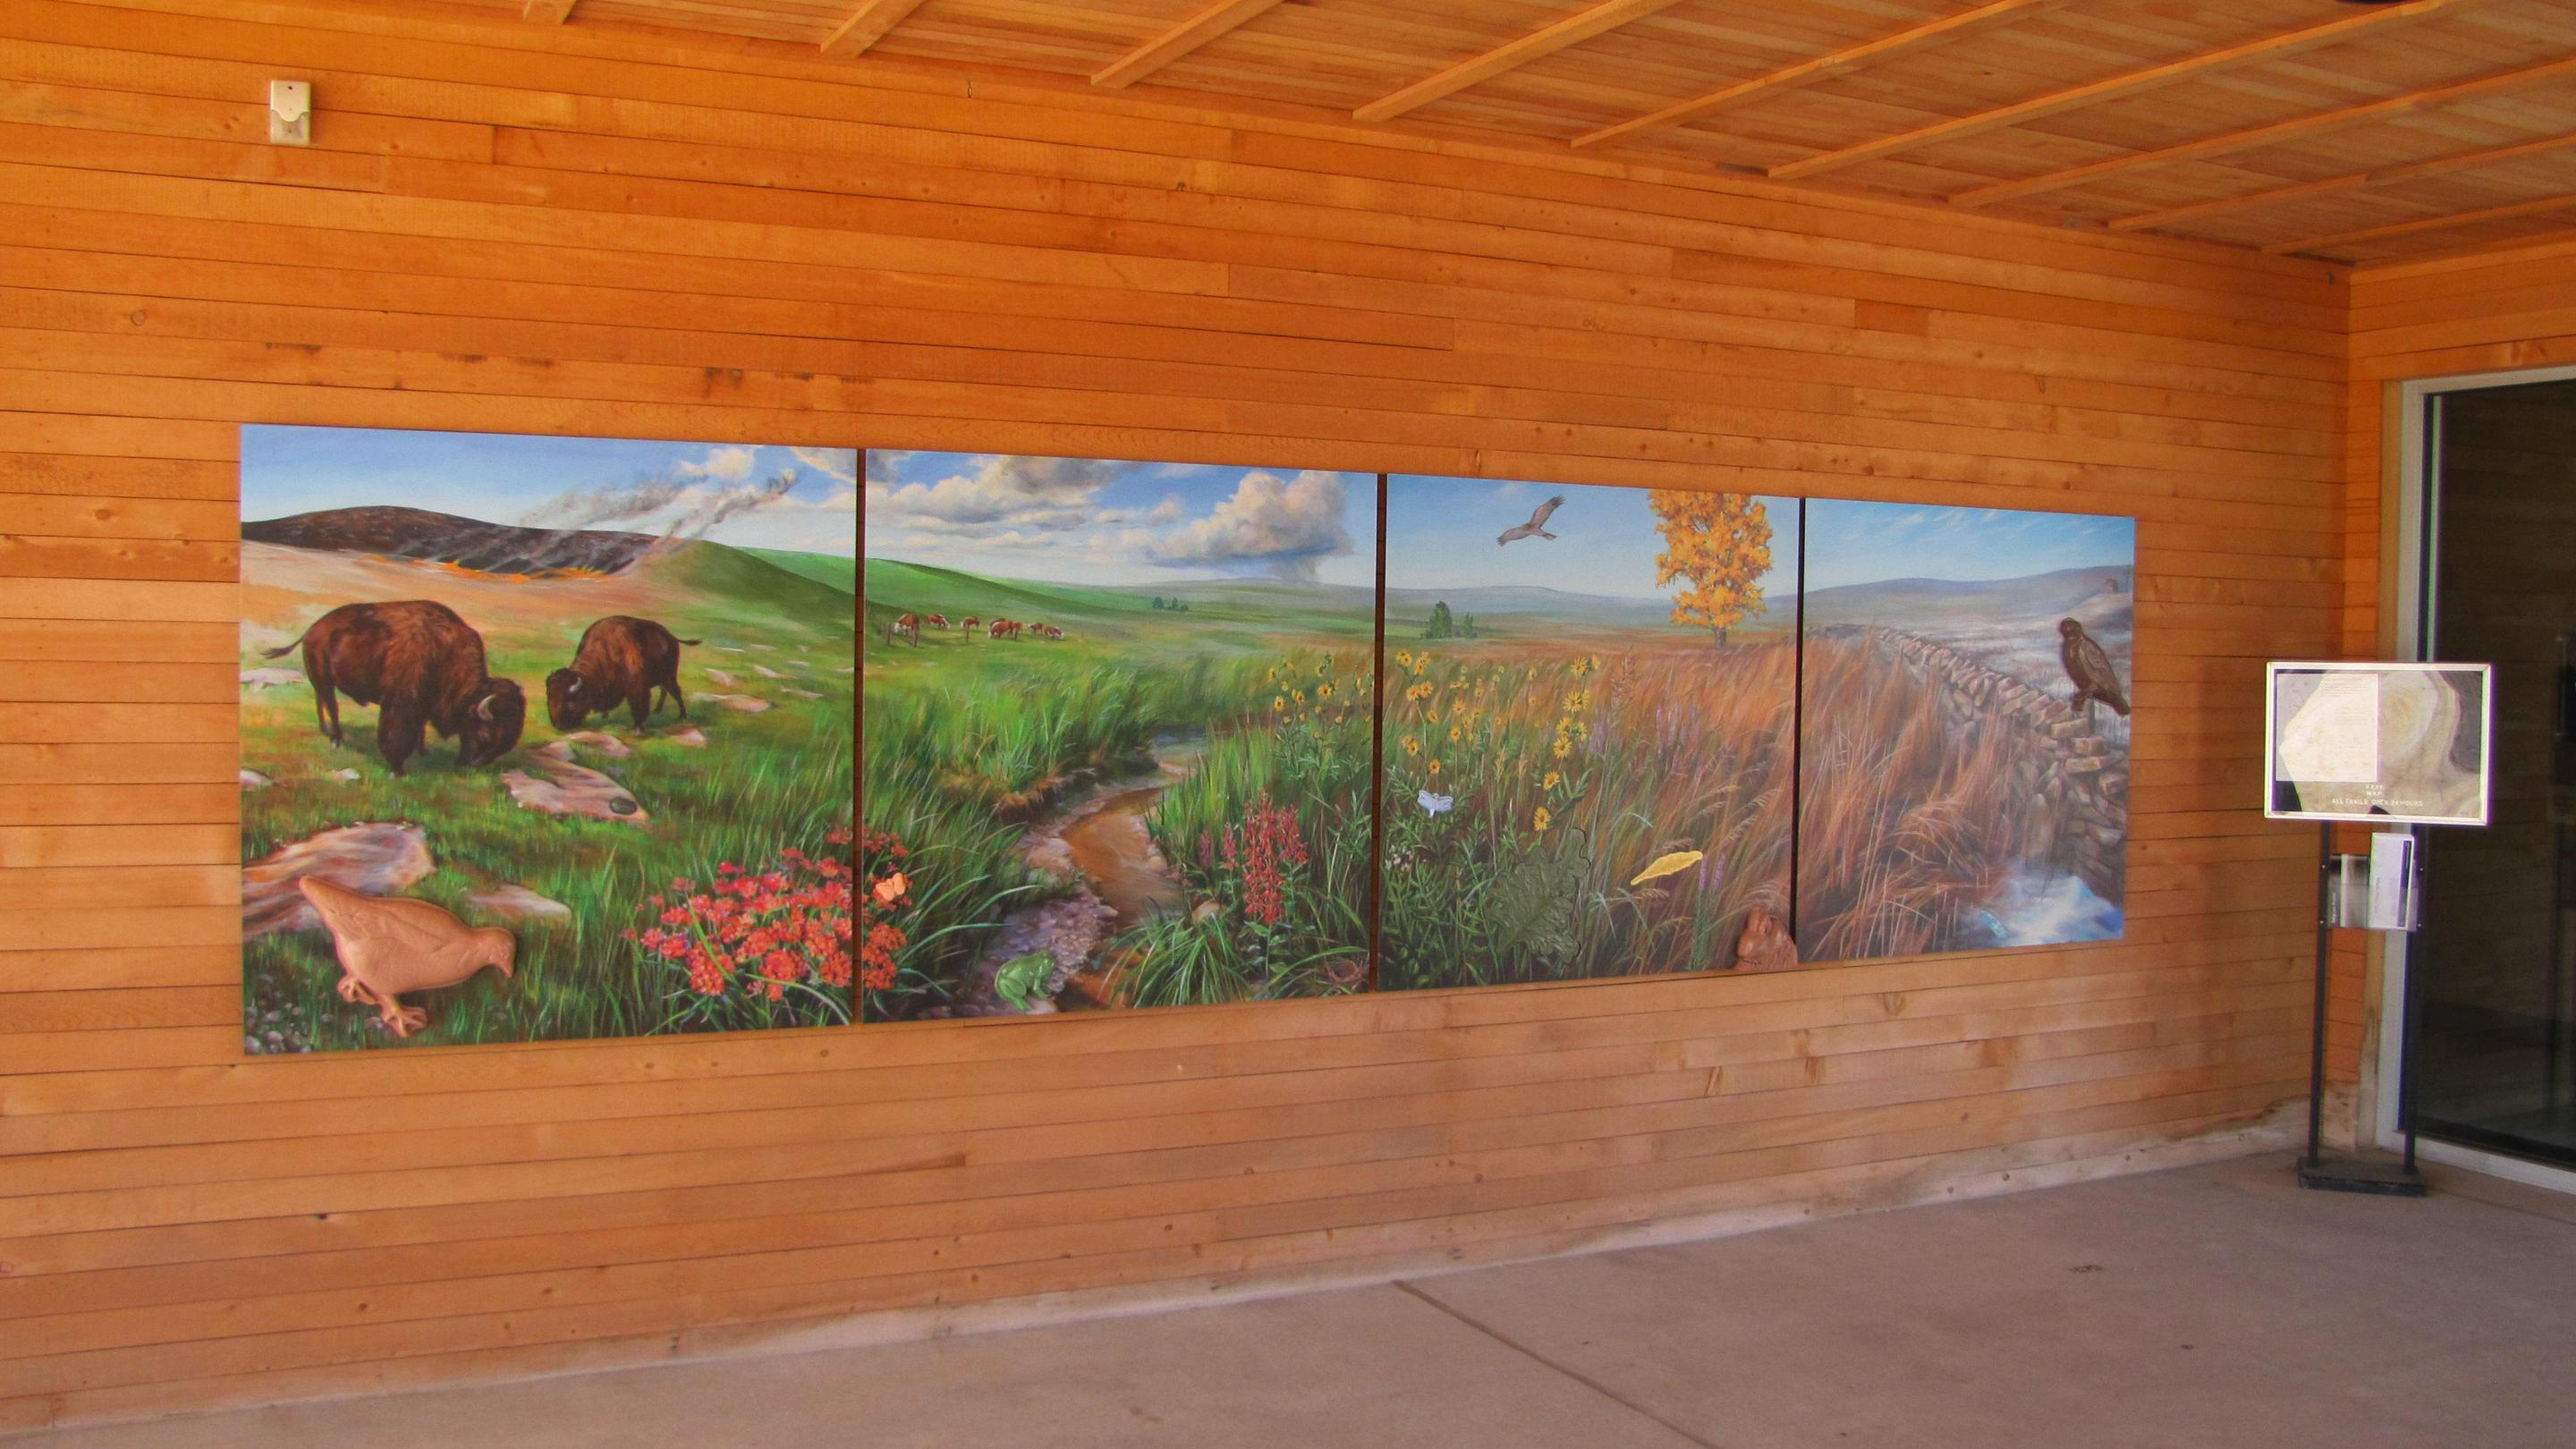 Visitor Center MuralAmy Bartlett Wright's 4 piece mural raises features of the prairie ecosystem.